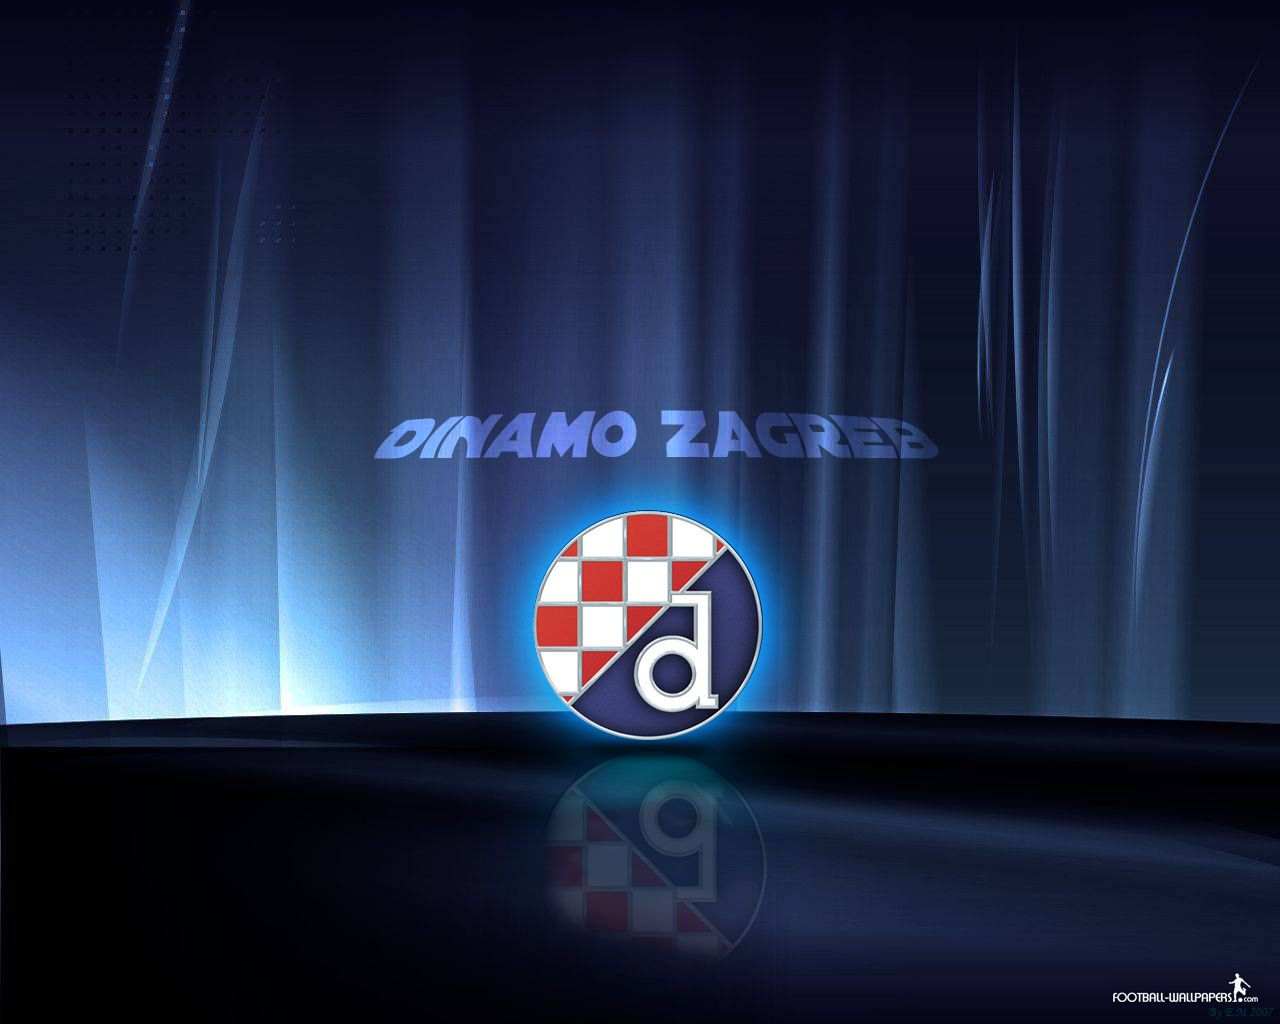 Dinamo Zagreb Wallpaper Wallpapers: Players, Teams, Leagues Wallpapers